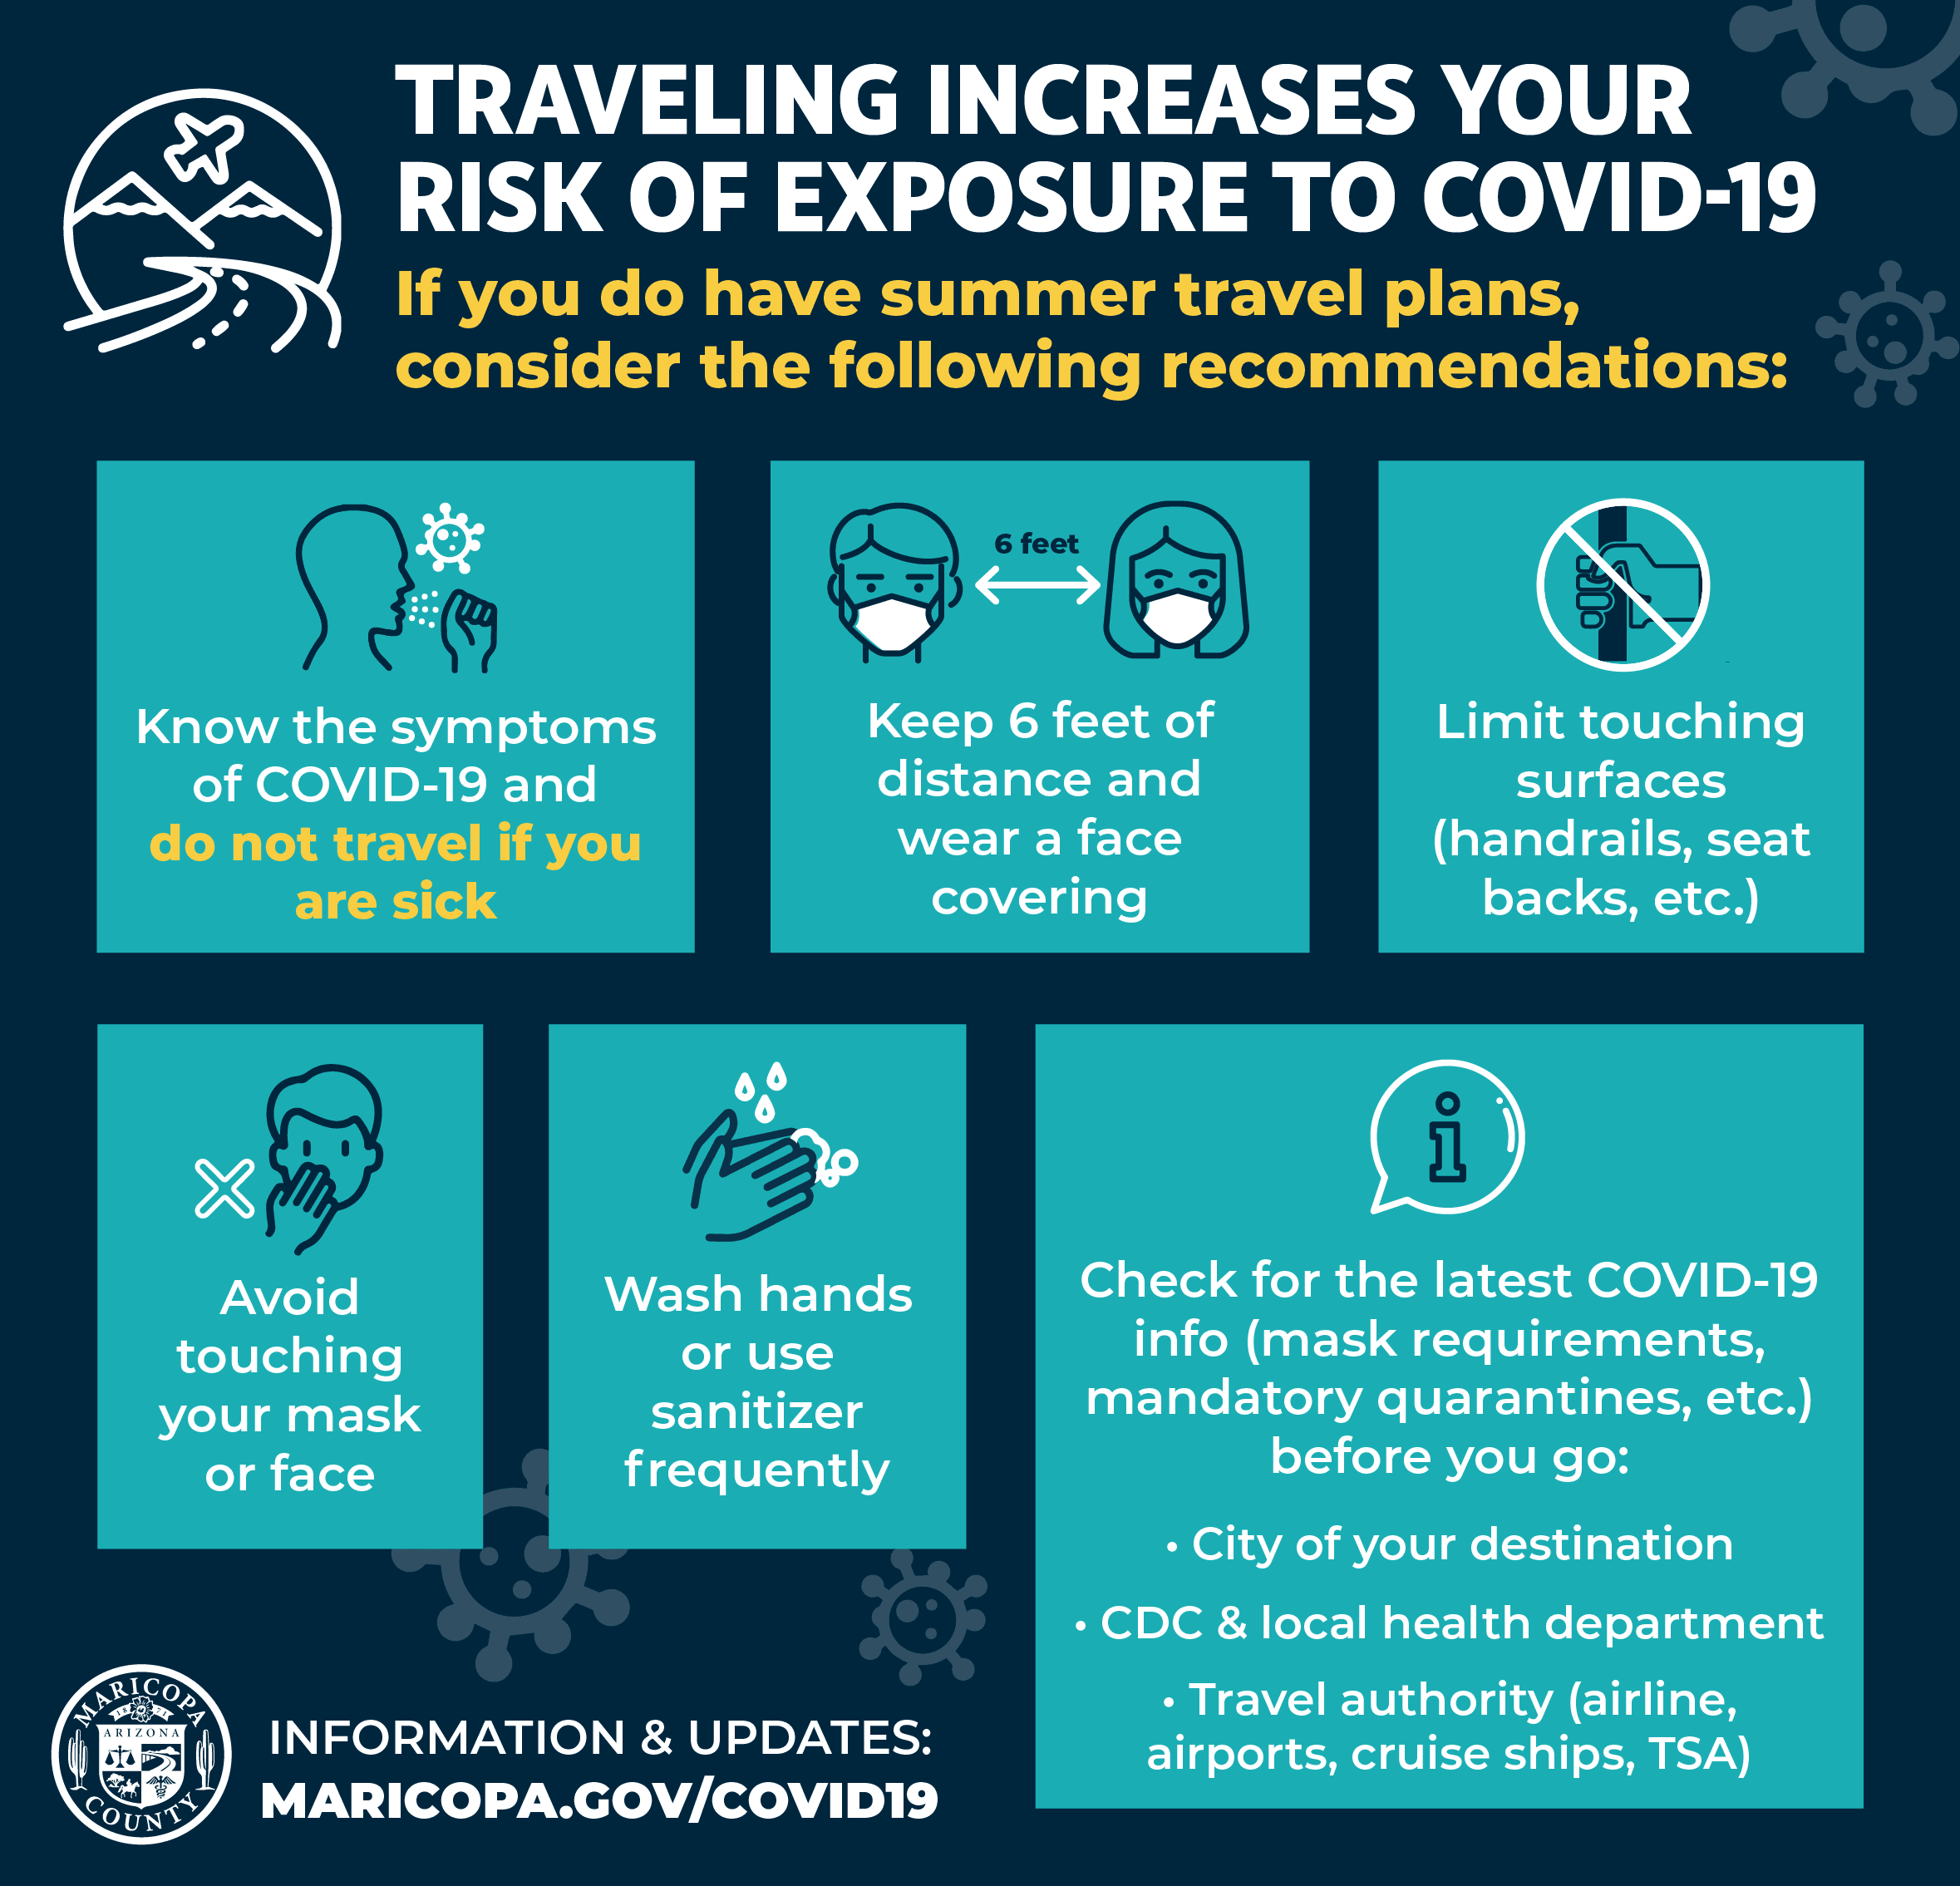 Traveling increases your risk of exposure to COVID-19